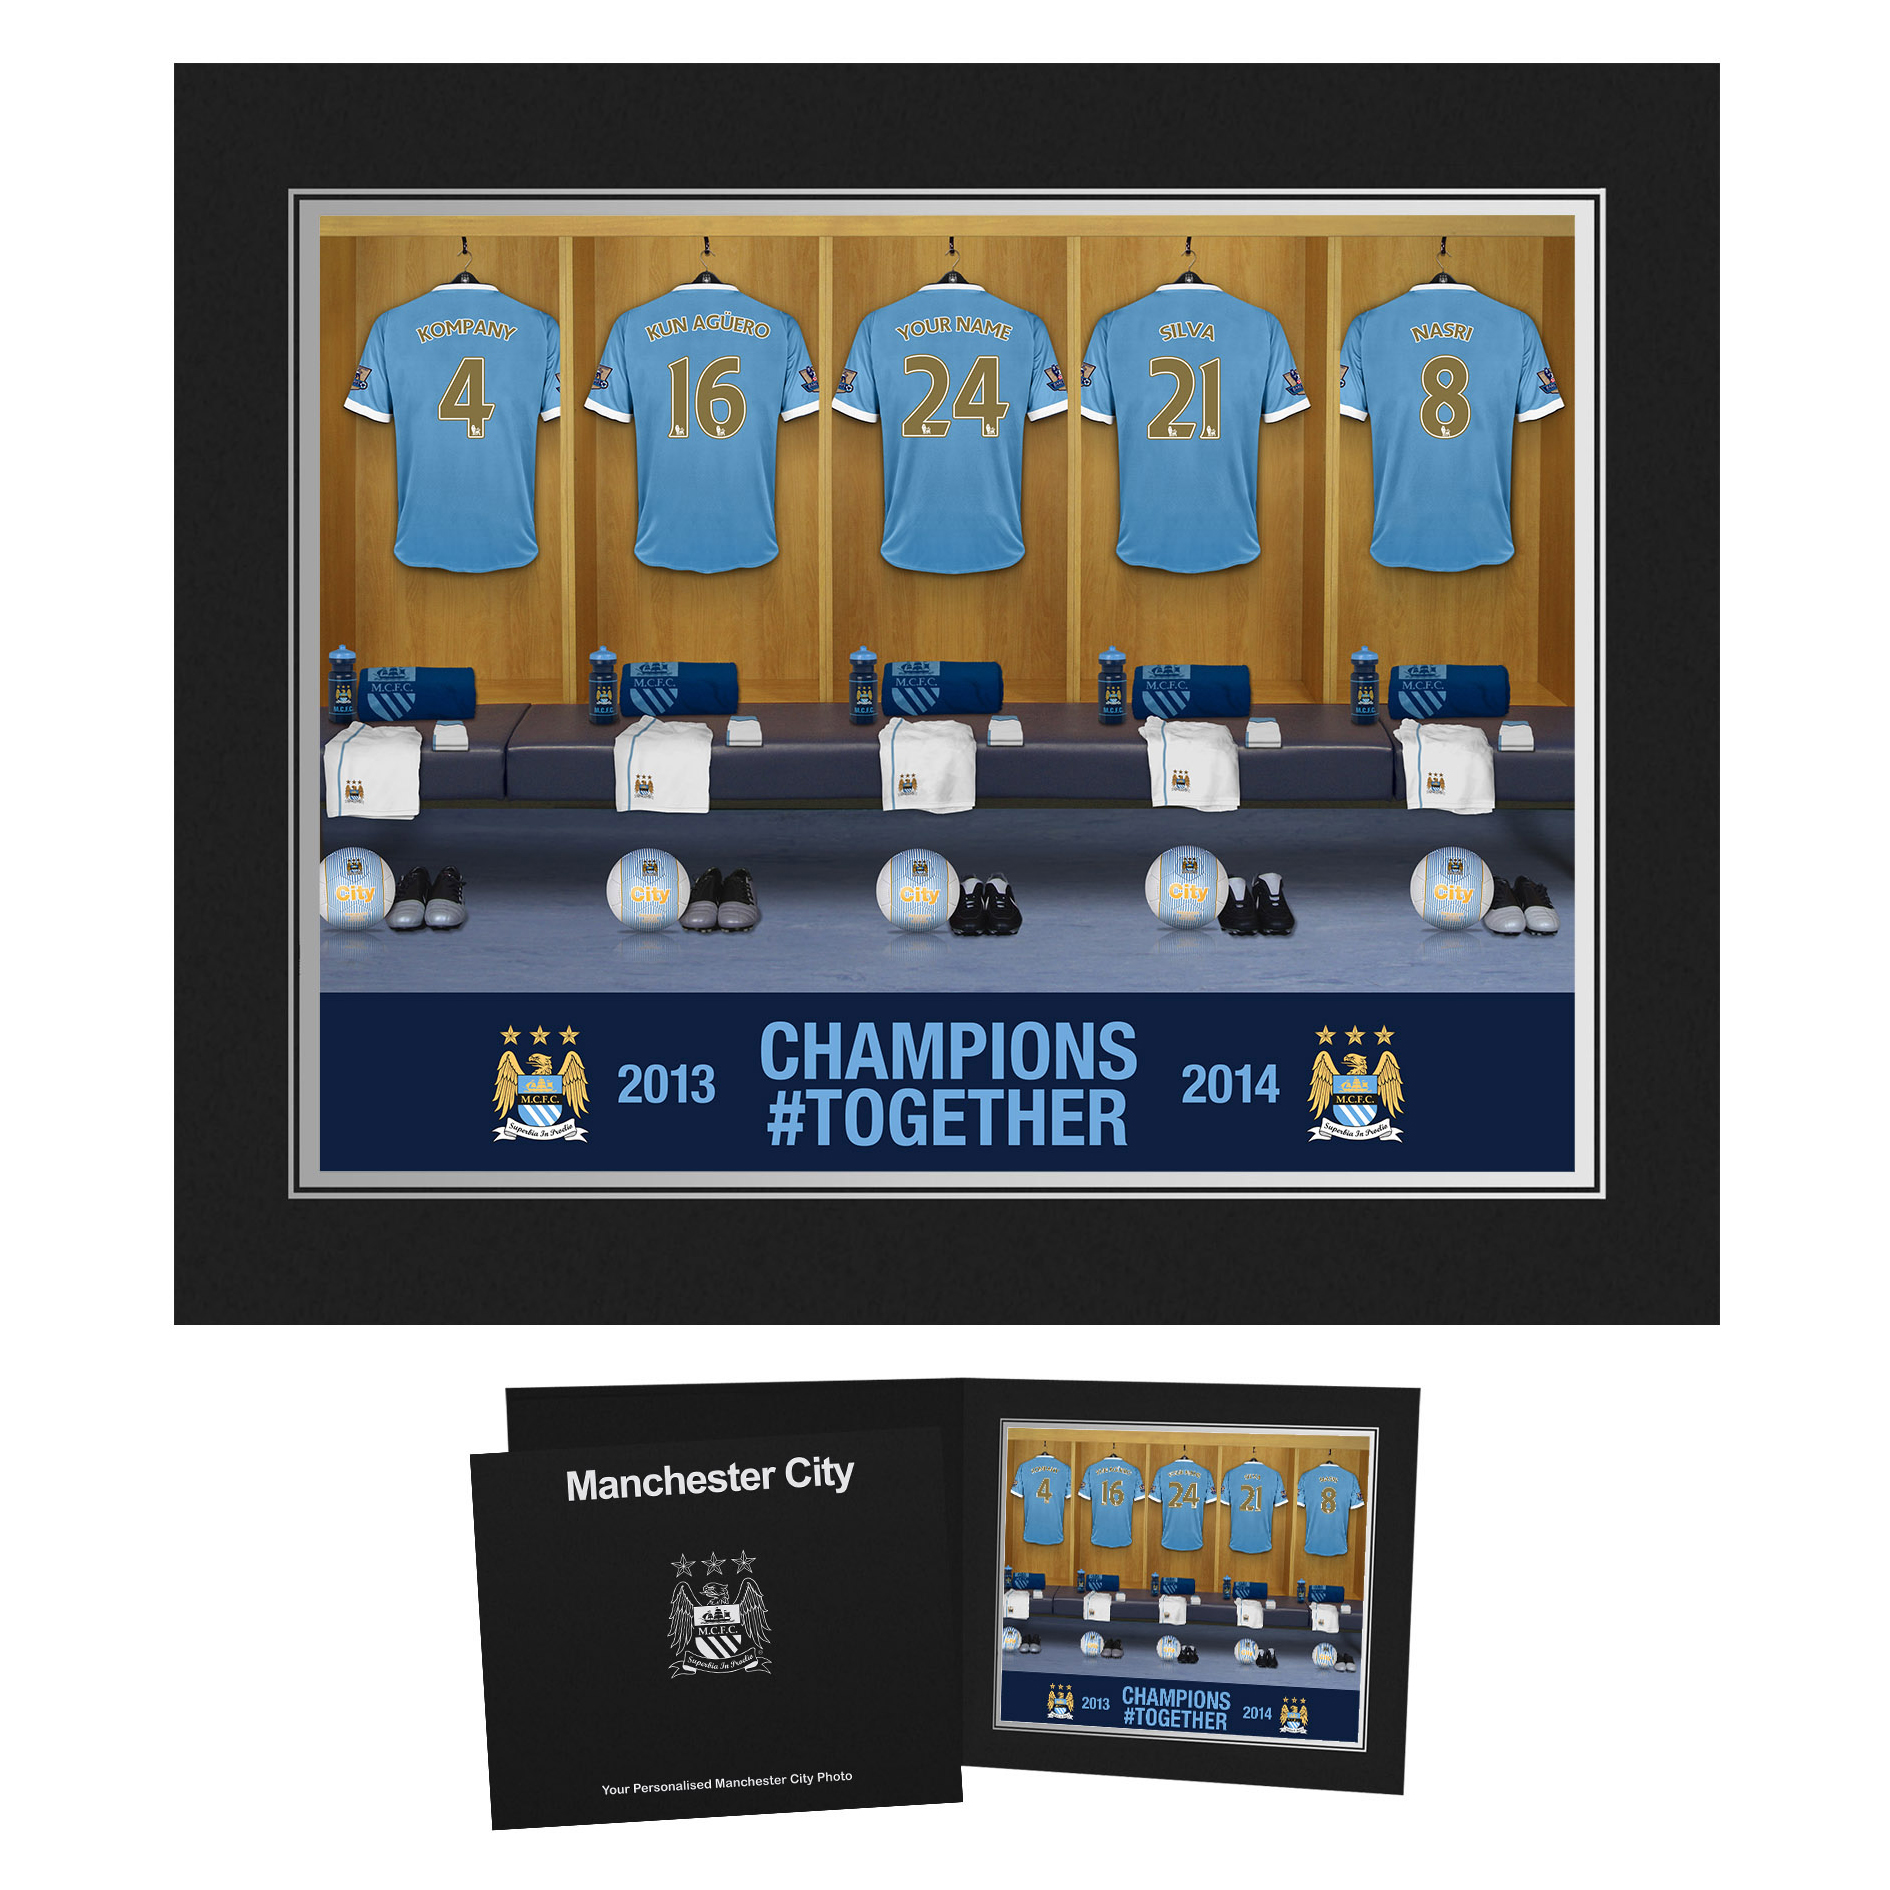 Manchester City Personalised Champions #Together Dressing Room Photo in Presentation Folder 2013/2014